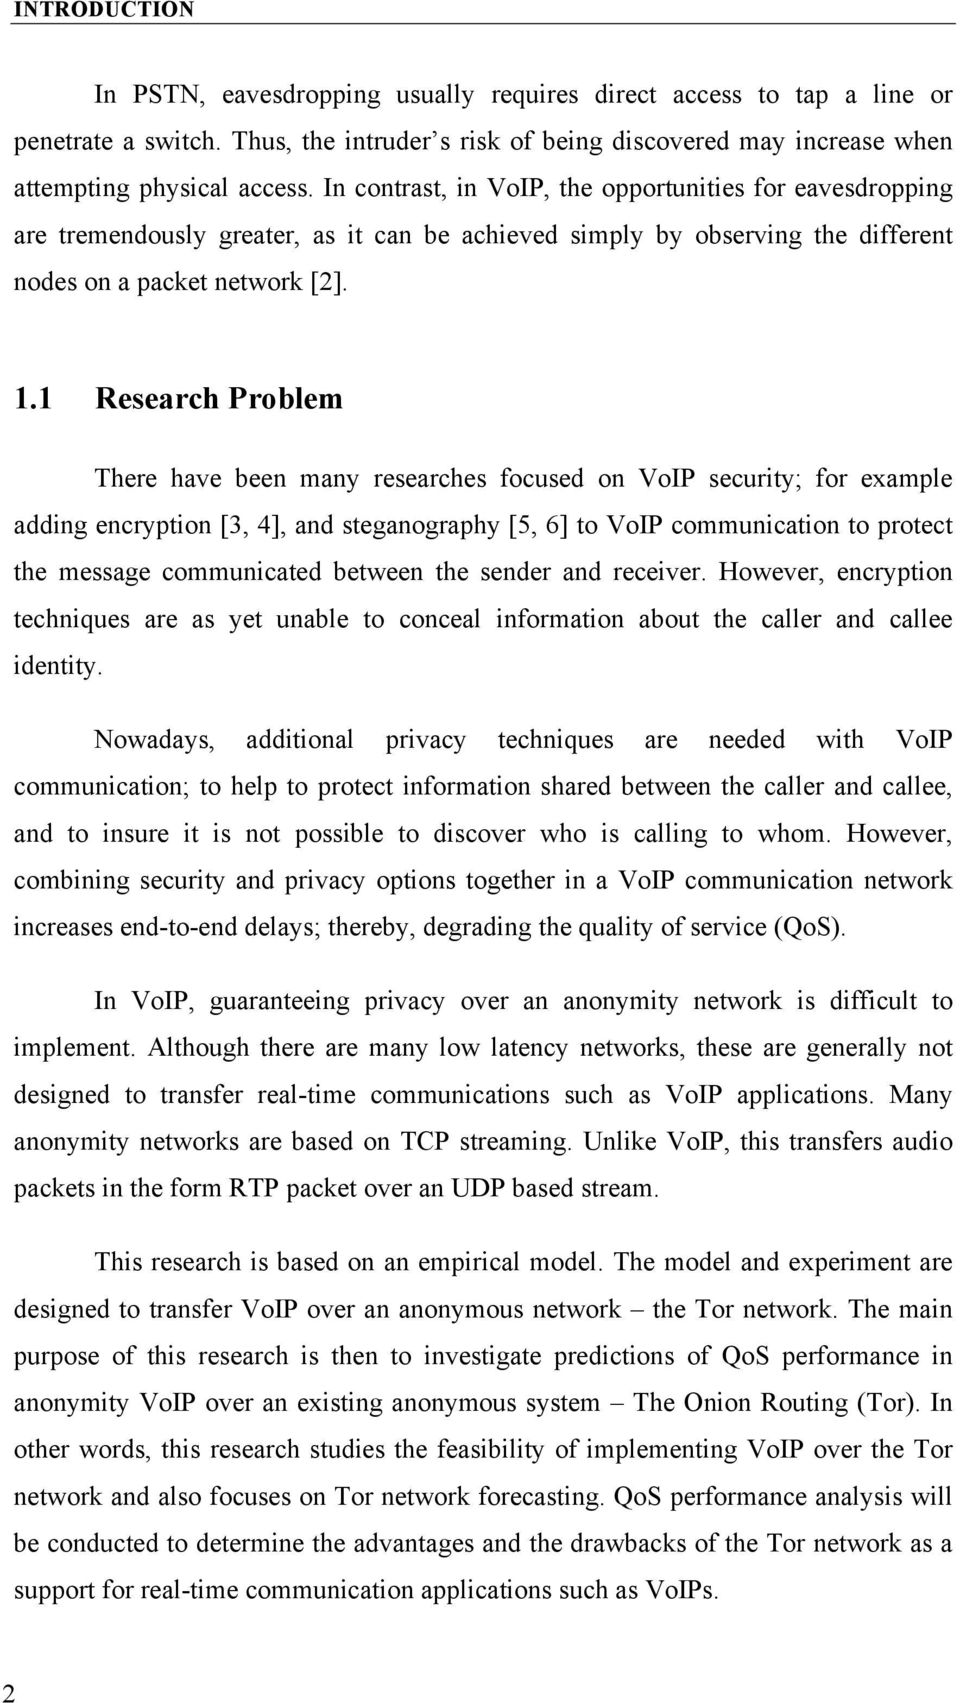 1 Research Problem There have been many researches focused on VoIP security; for example adding encryption [3, 4], and steganography [5, 6] to VoIP communication to protect the message communicated